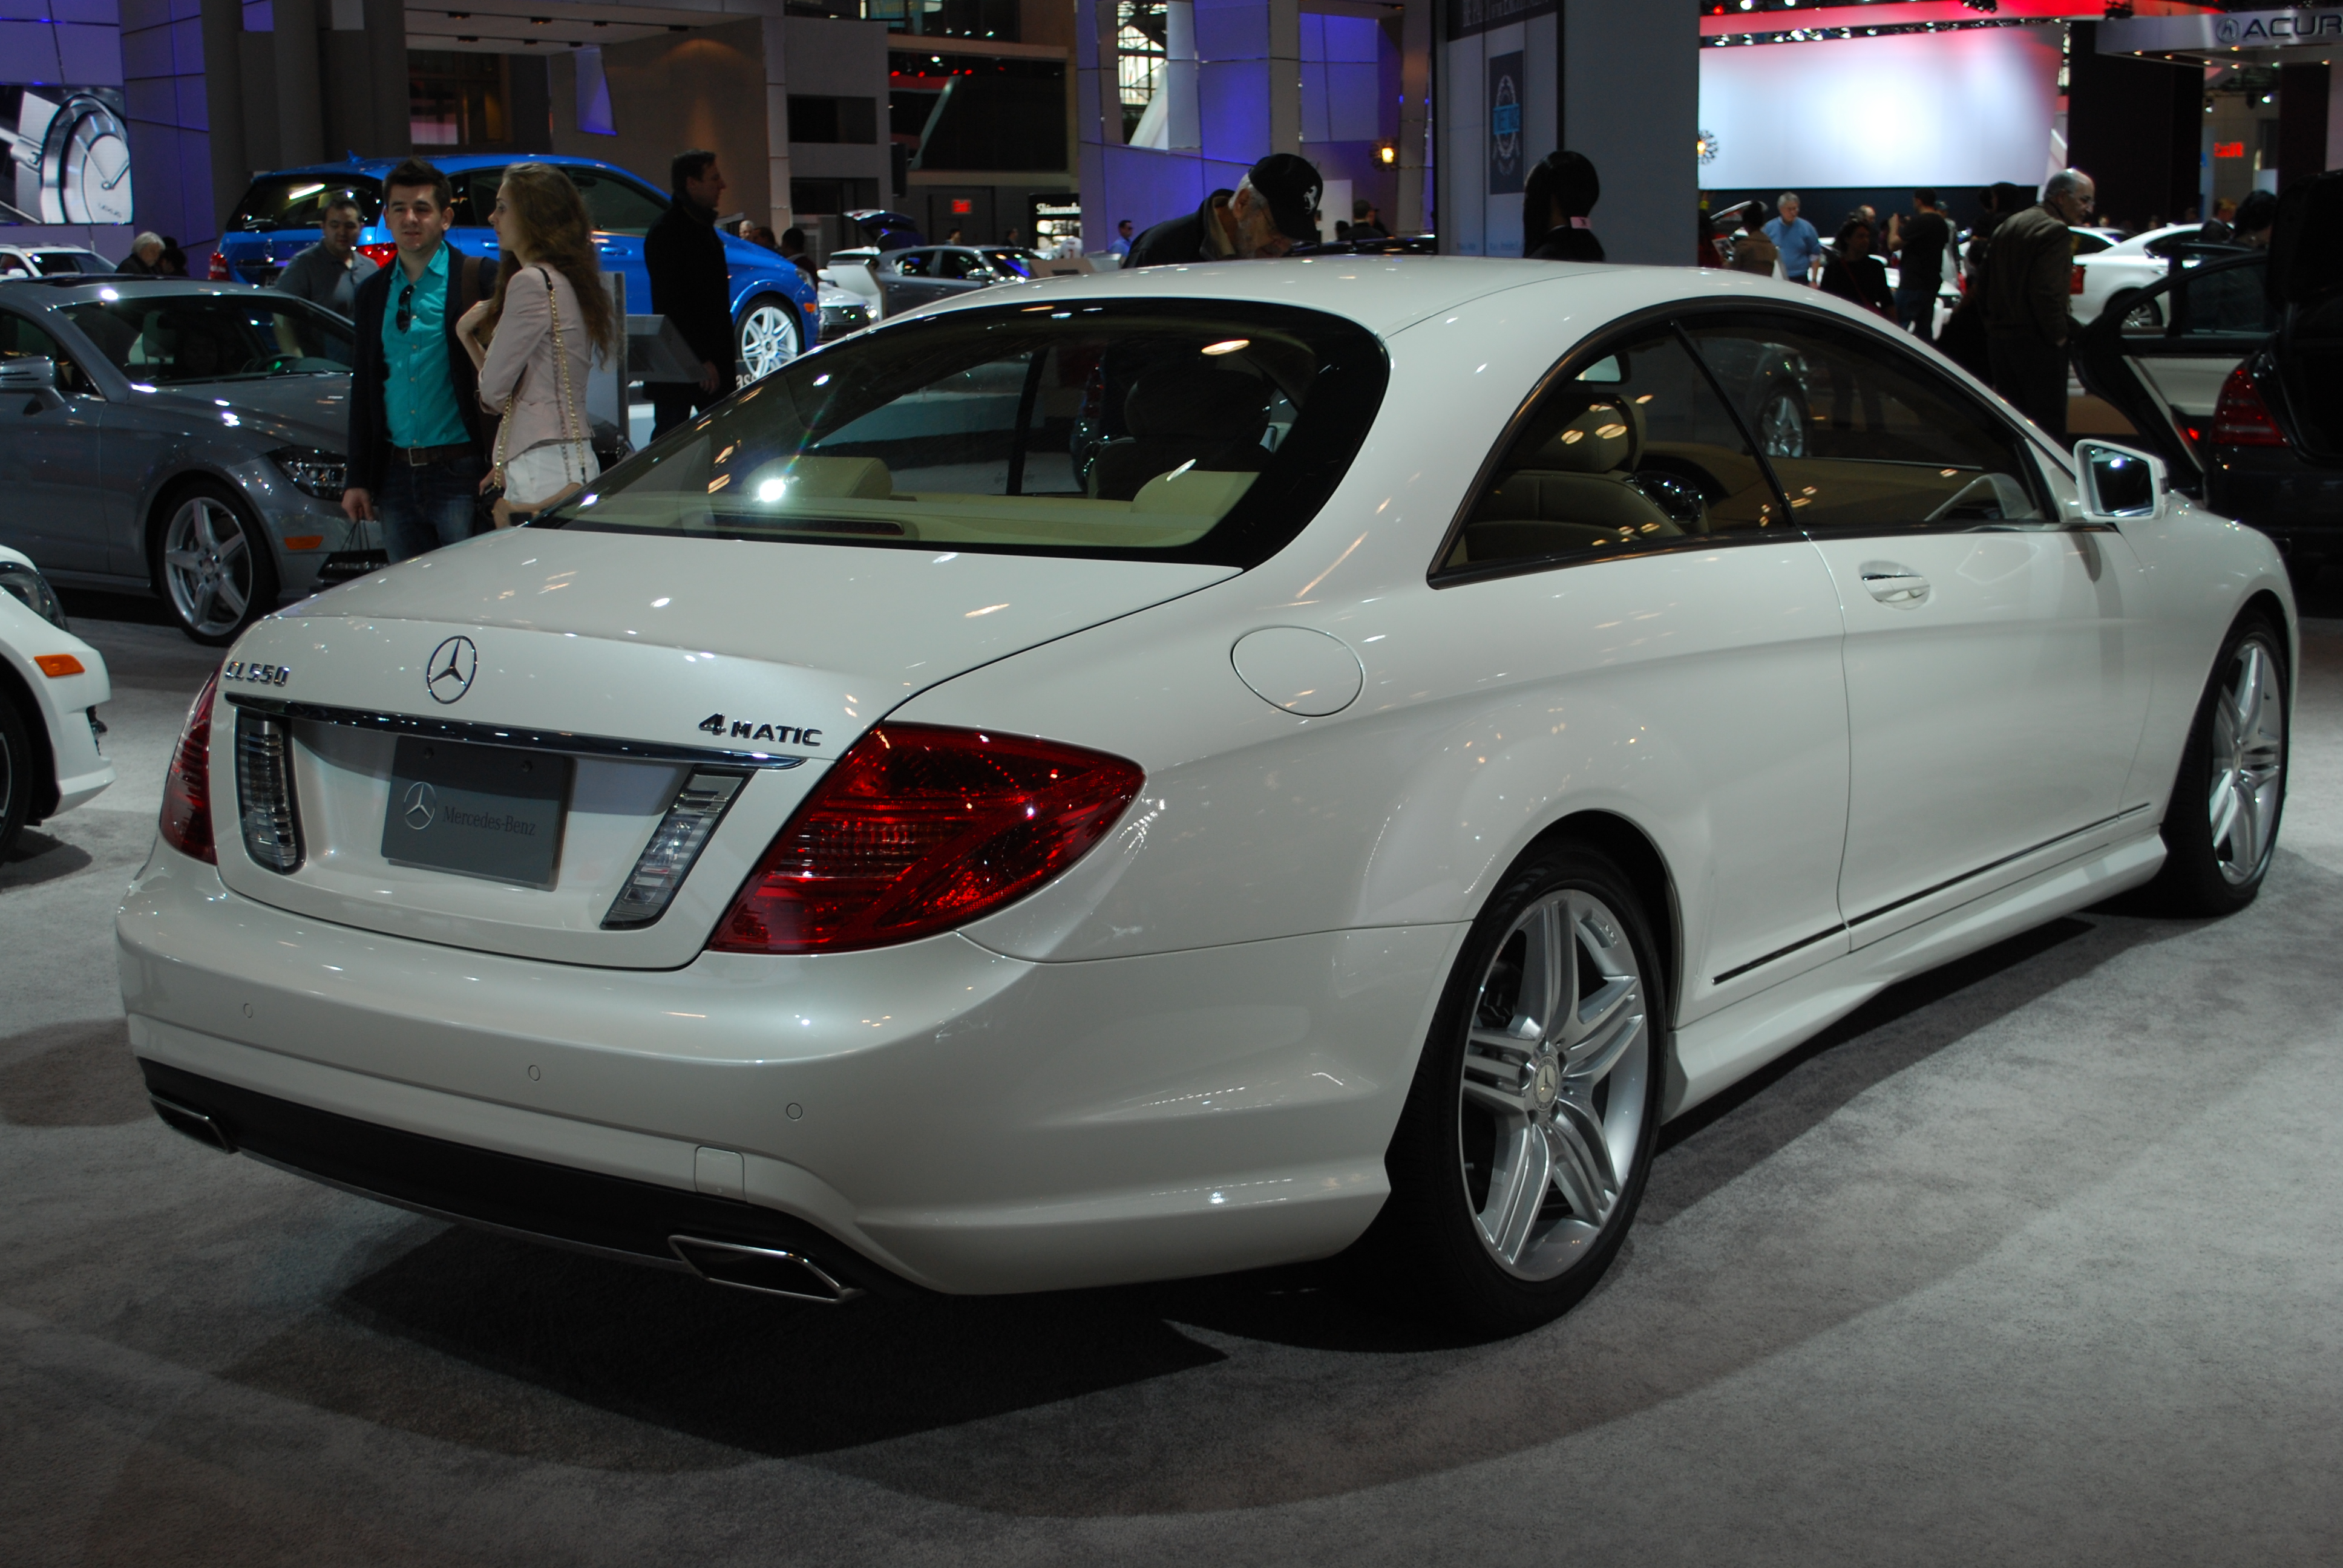 Mercedes benz cl550 4matic coupe ii by hardrocker78 on for 2014 mercedes benz cl550 4matic